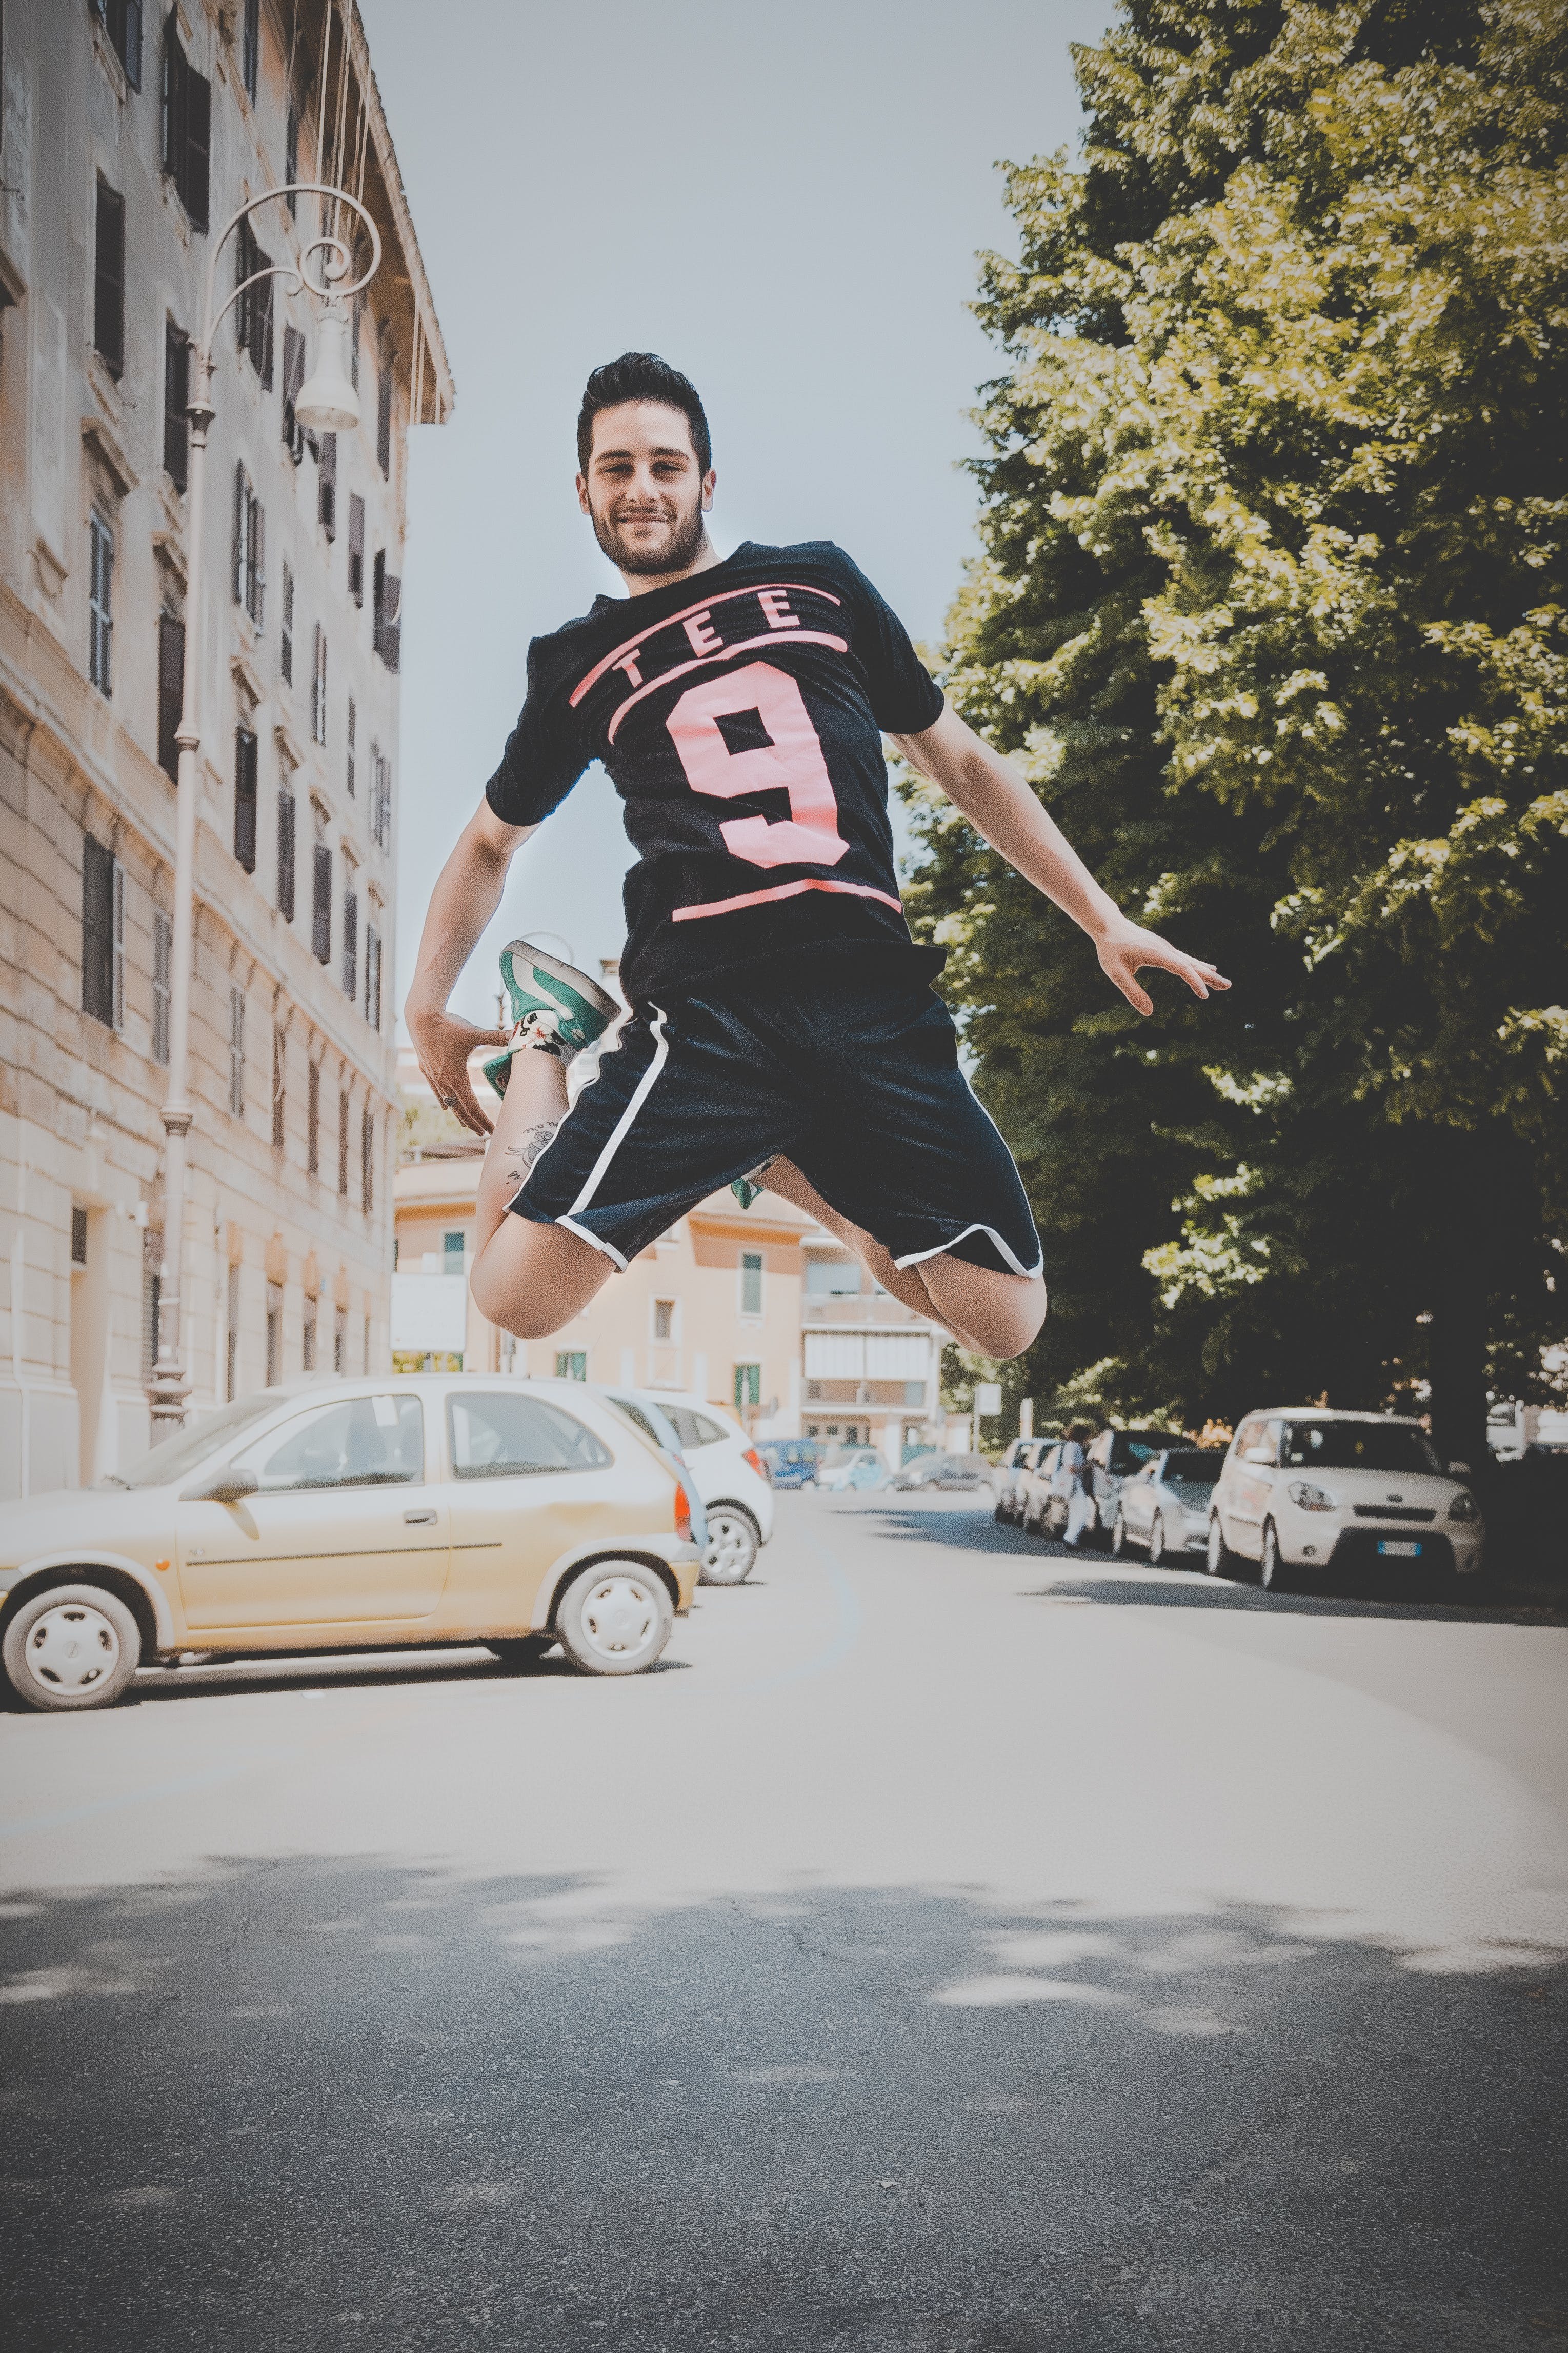 Photo of a Guy Jumping on Road